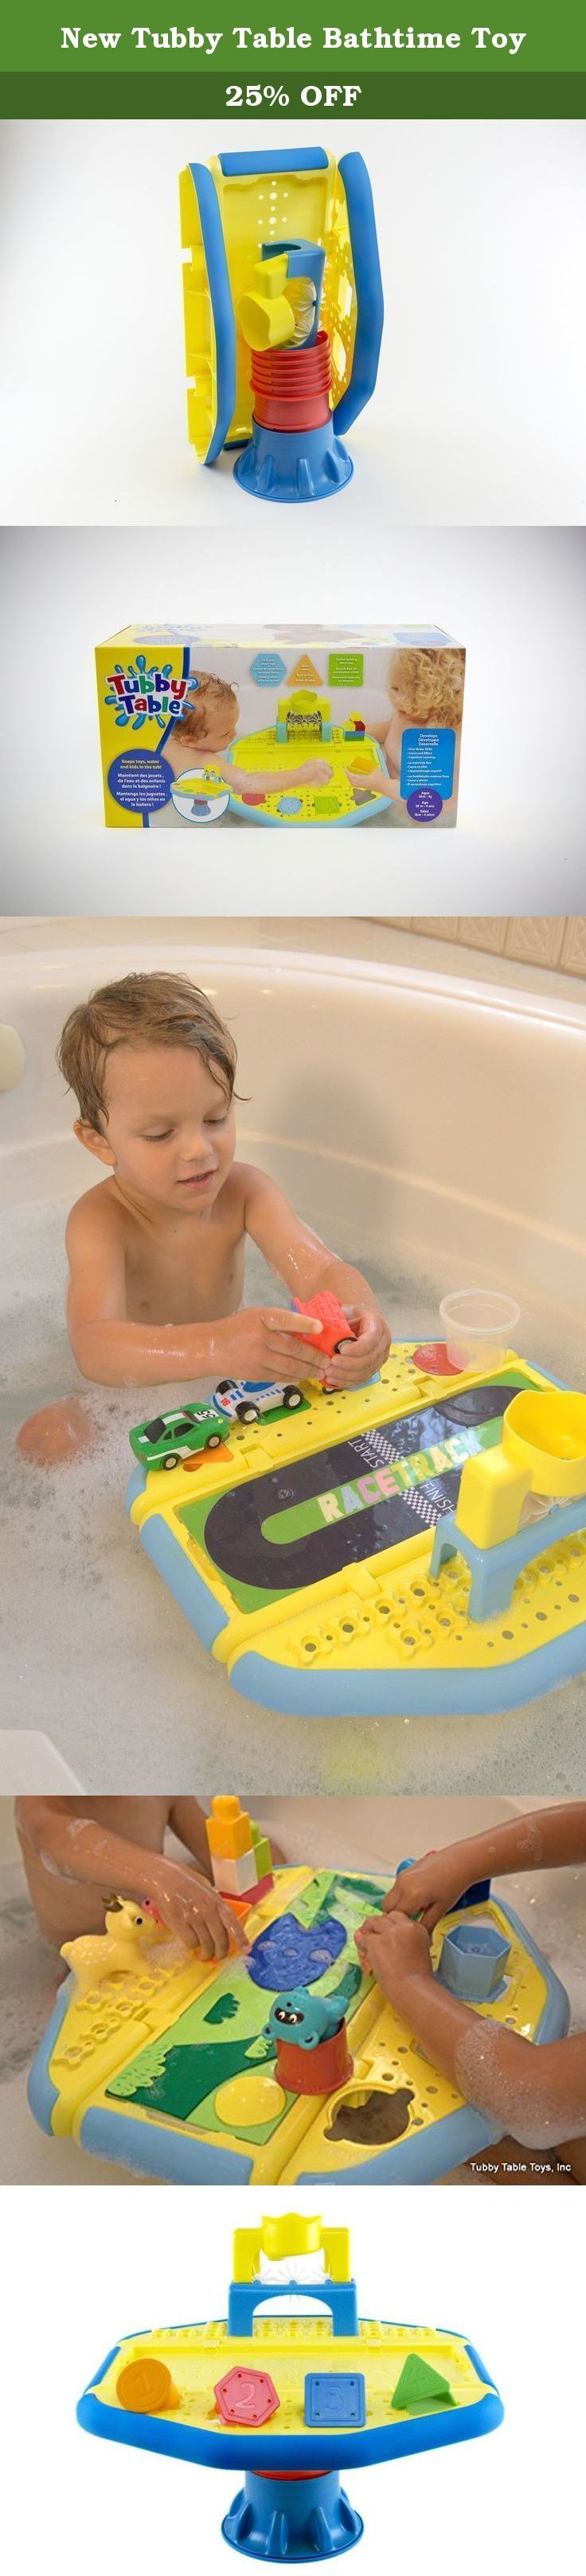 New Tubby Table Bathtime Toy. Introducing the New Tubby Table, the only bath-time activity table designed to keep your toddlers bath time play & bath water inside the tub and allow for mom & dad to focus all their attention back to their little one. It's a practical solution for keeping bath-time fun, educational and most of all dry! The easy-to-use New Tubby Table suctions to the bath tub floor keeping all the pouring & filling in the middle of the tub instead of on (or off) the edge of…